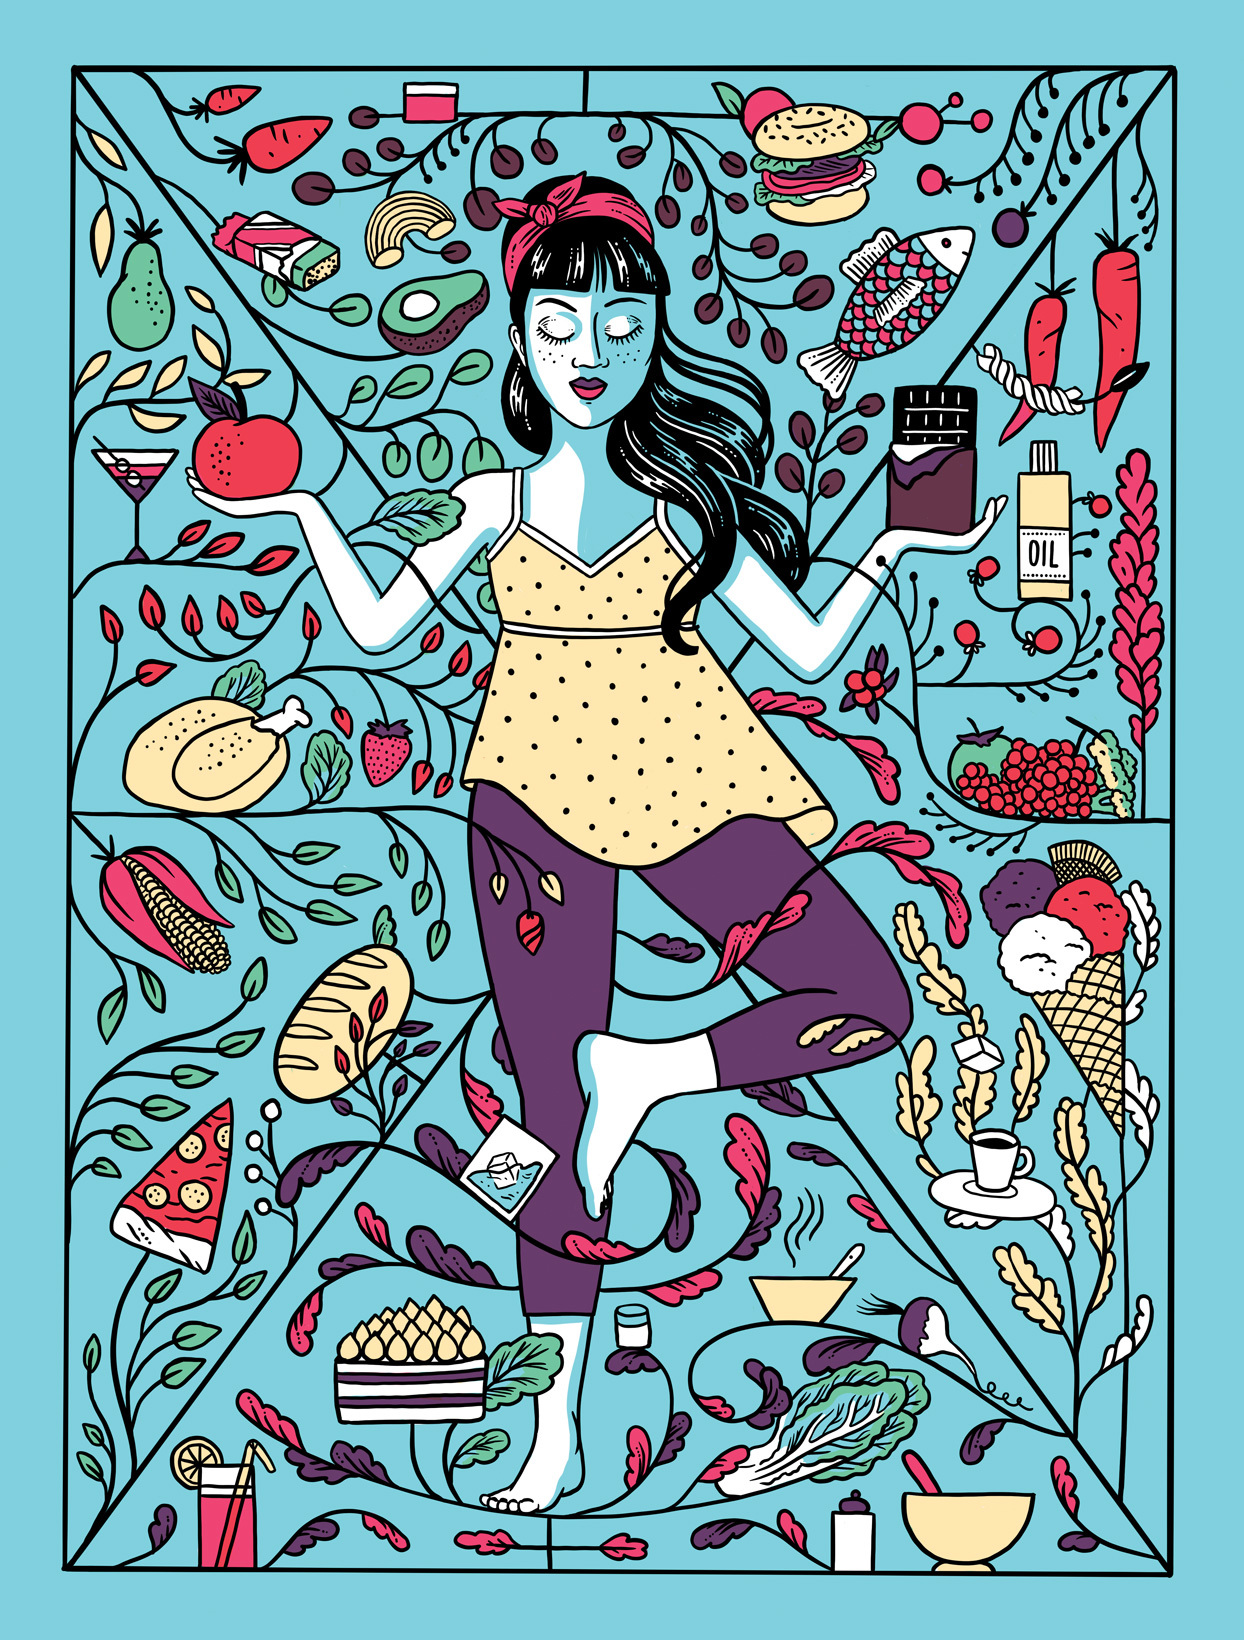 an illustration of a peaceful woman surrounded by food choices